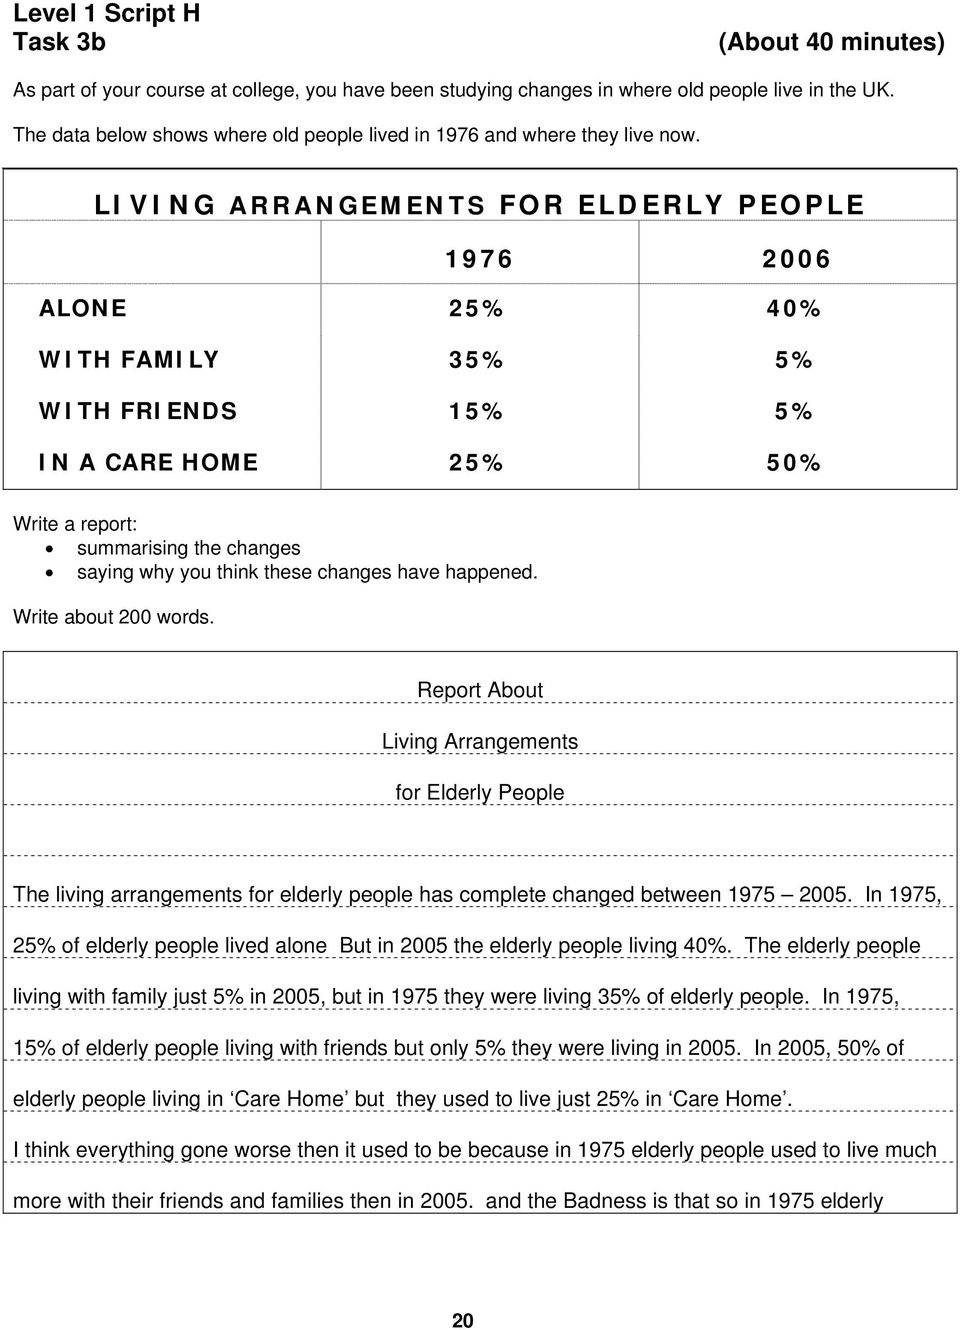 LIVING ARRANGEMENTS FOR ELDERLY PEOPLE 1976 2006 ALONE 25% 40% WITH FAMILY 35% 5% WITH FRIENDS 15% 5% IN A CARE HOME 25% 50% Write a report: summarising the changes saying why you think these changes